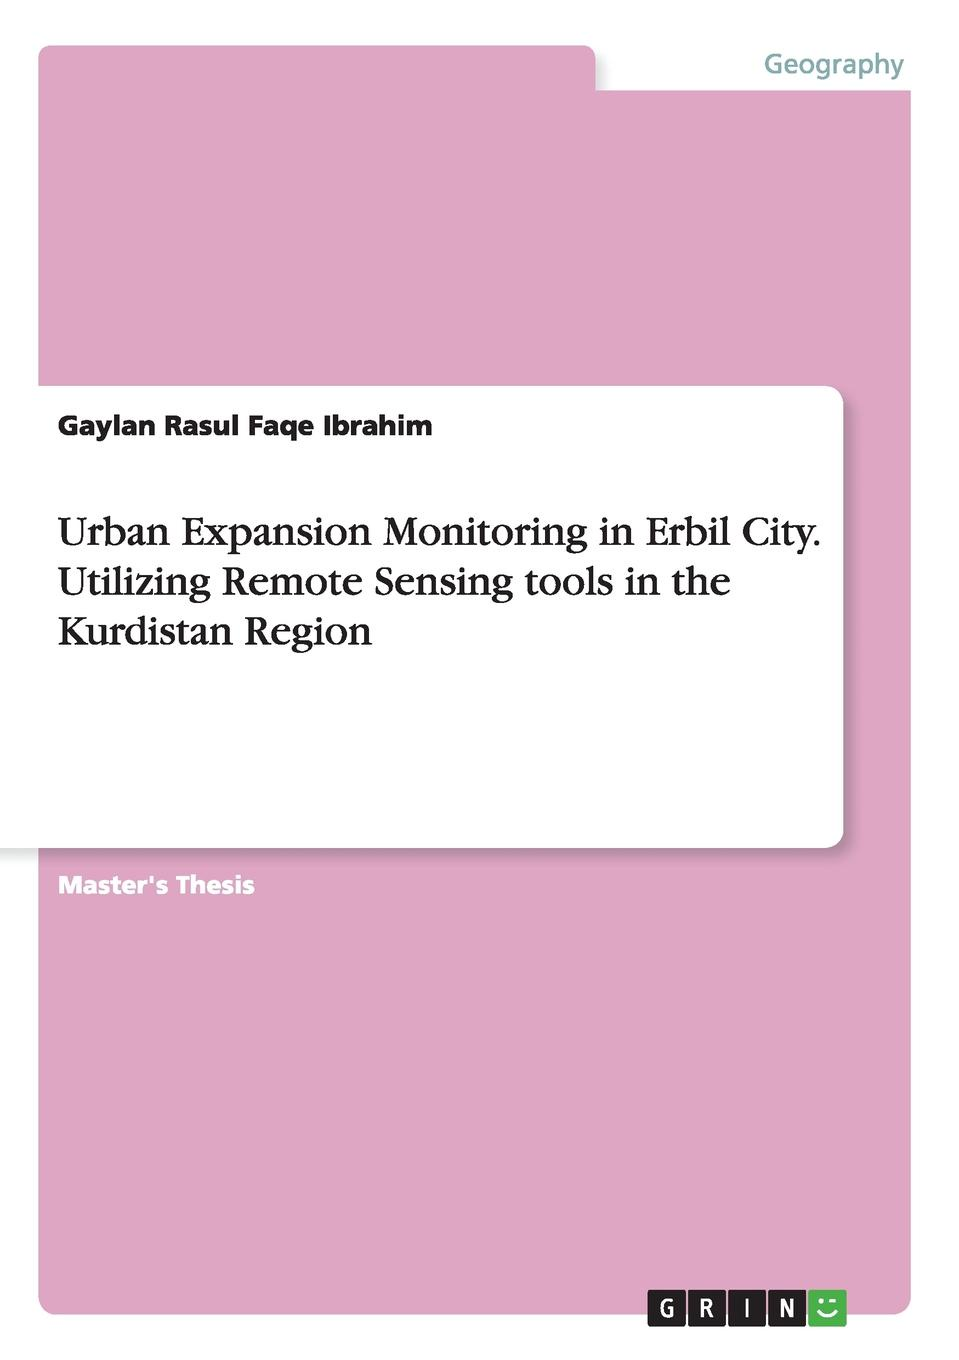 Gaylan Rasul Faqe Ibrahim Urban Expansion Monitoring in Erbil City. Utilizing Remote Sensing tools in the Kurdistan Region detection and classification of masses in mammograms using ica